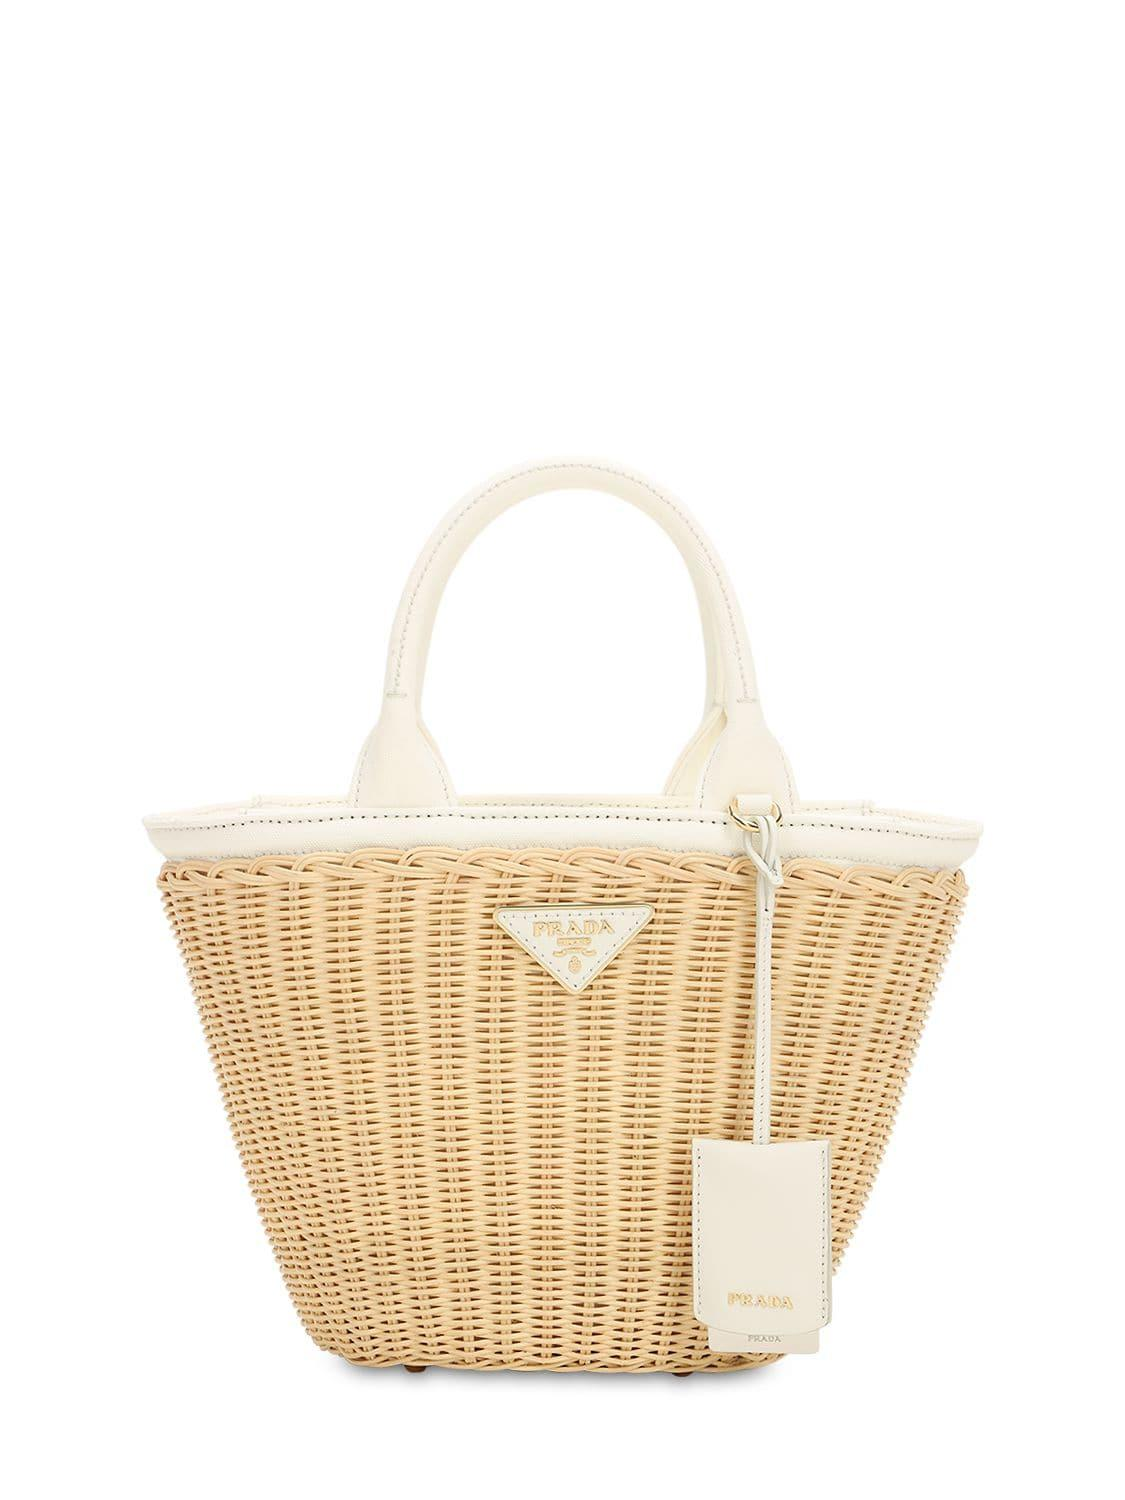 9174d42420f520 Prada - Natural Canvas & Wicker Top Handle Bag - Lyst. View fullscreen